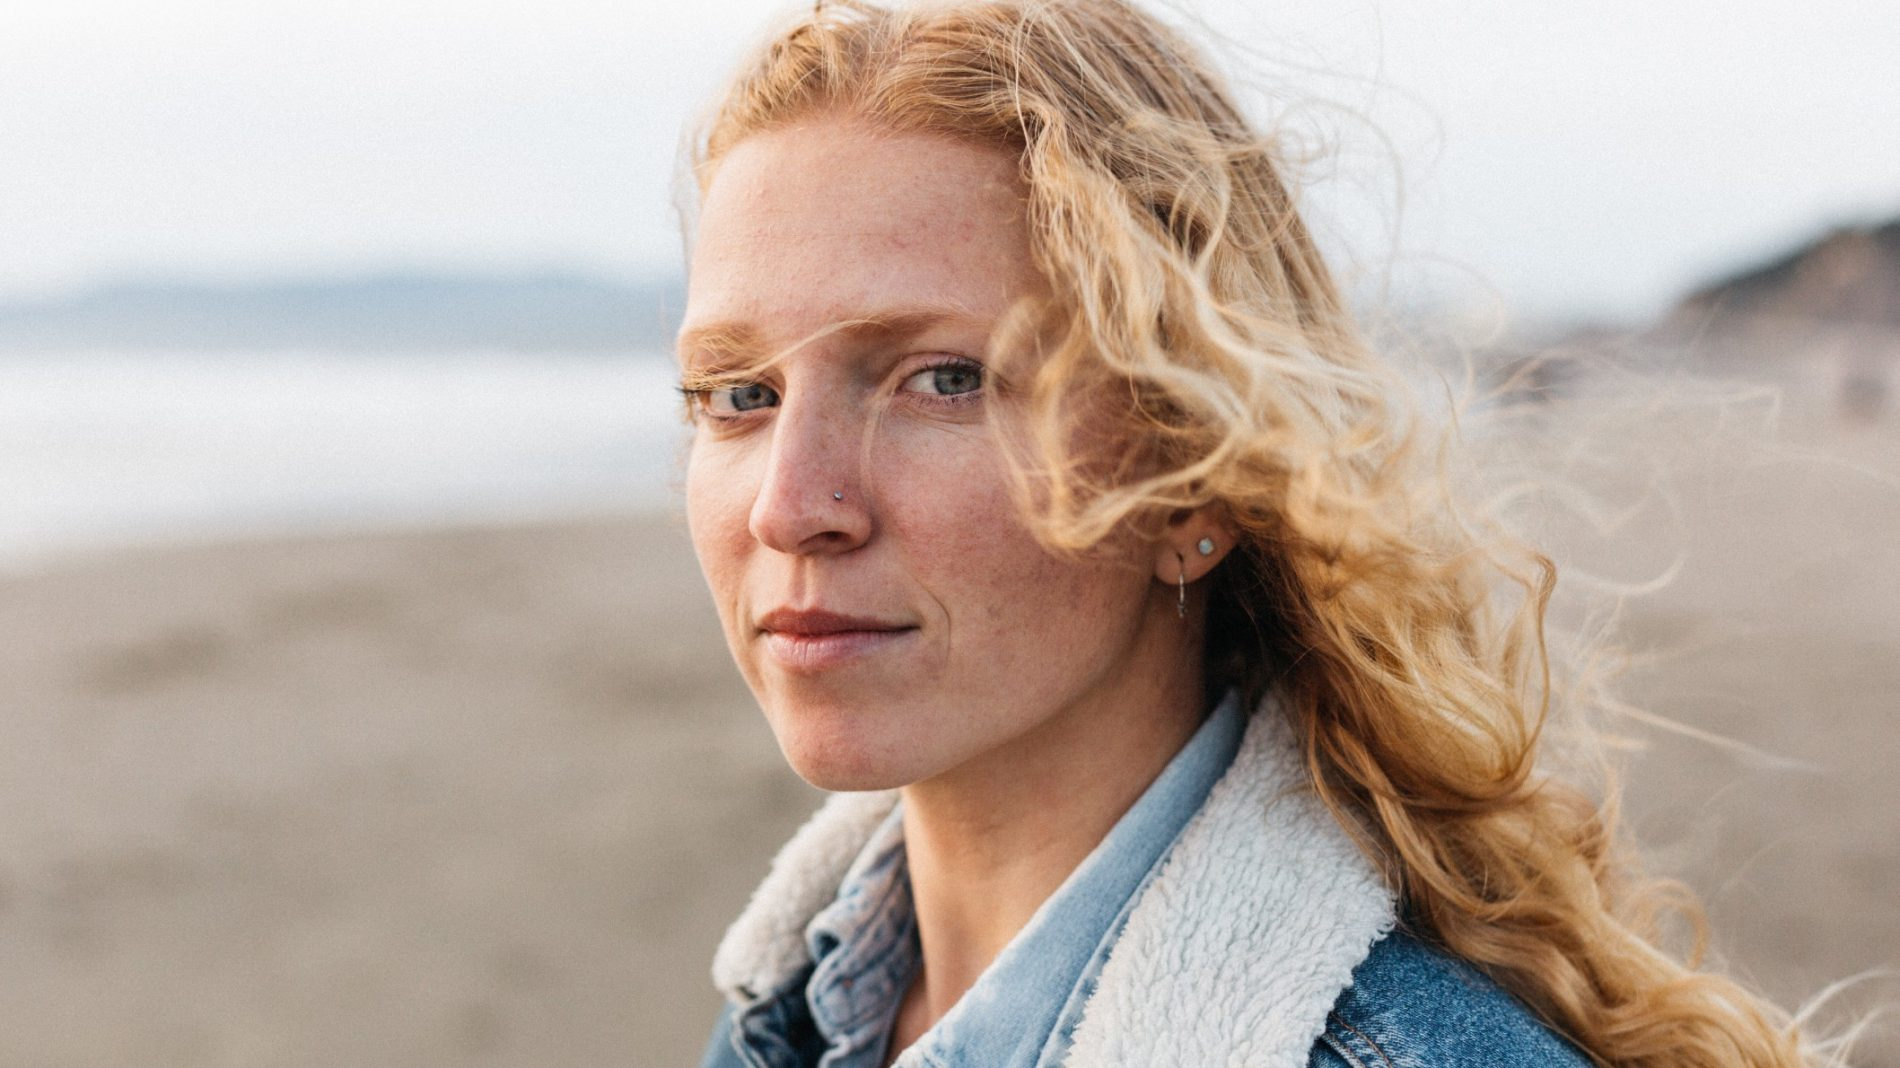 Young person with blond curly hair